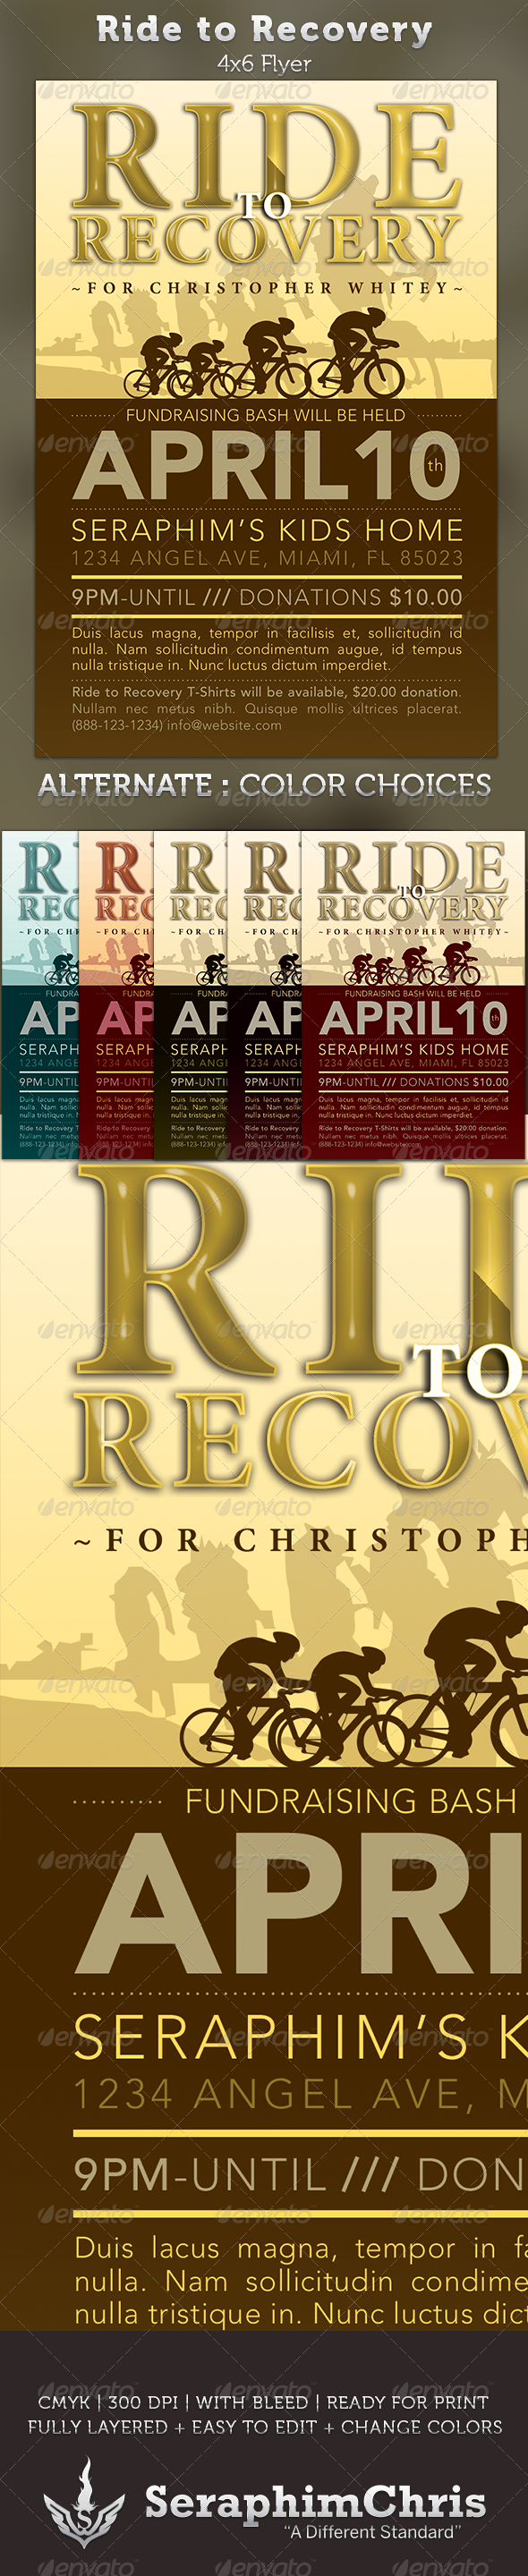 Ride to Recovery: Fundraiser Flyer Template - Events Flyers